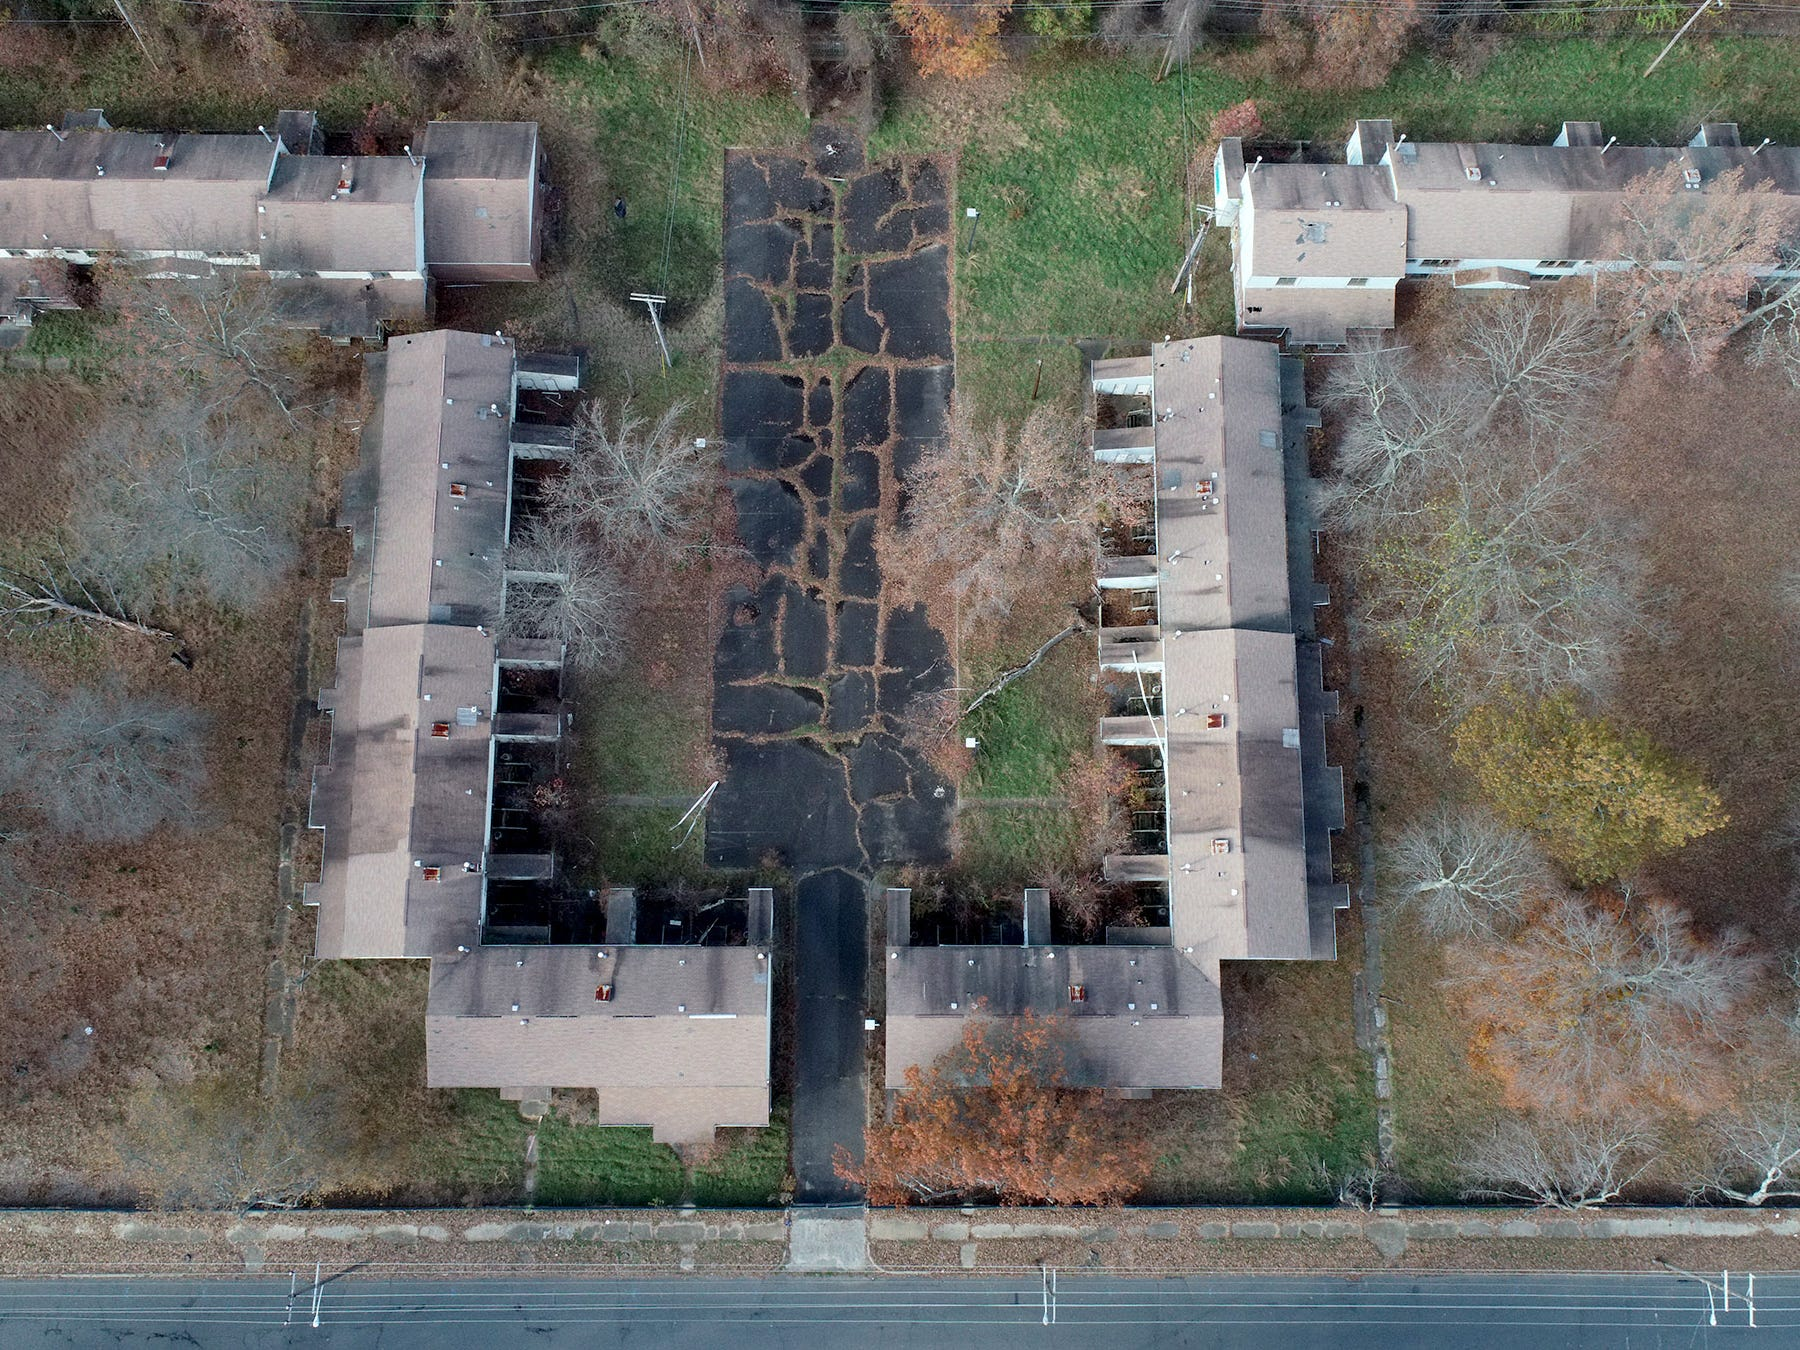 The Howard Commons area on the former Fort Monmouth property is shown Wednesday, November 14, 2018.